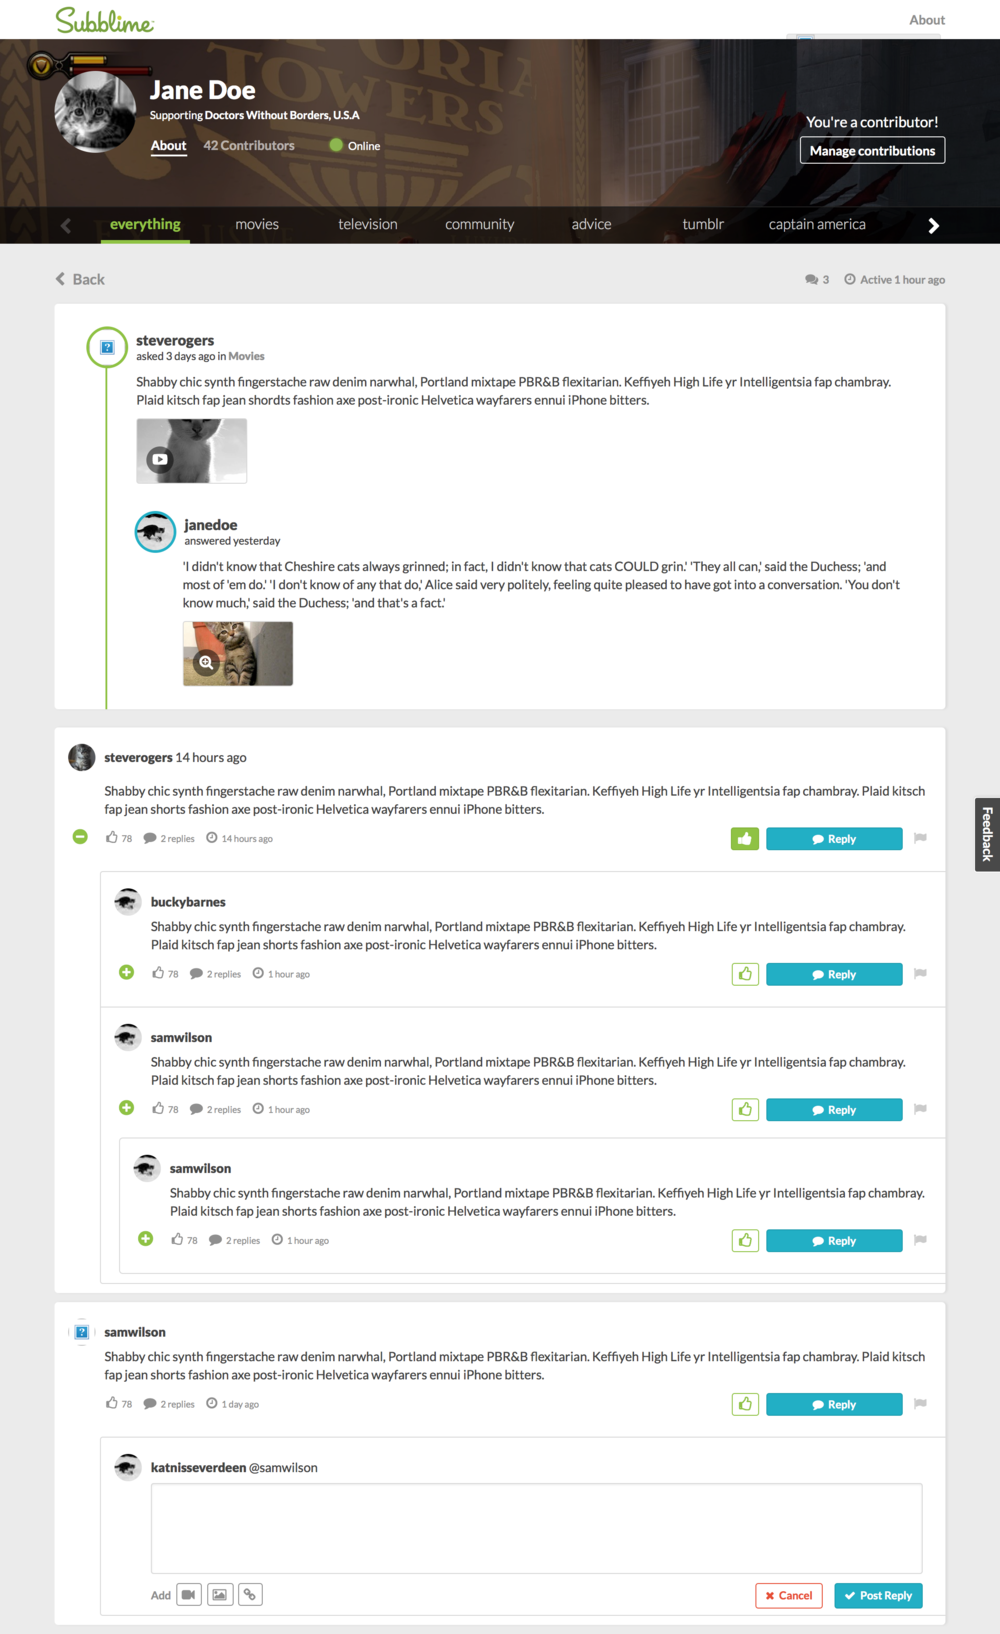 Front-end prototype of conversation page with topic threads.